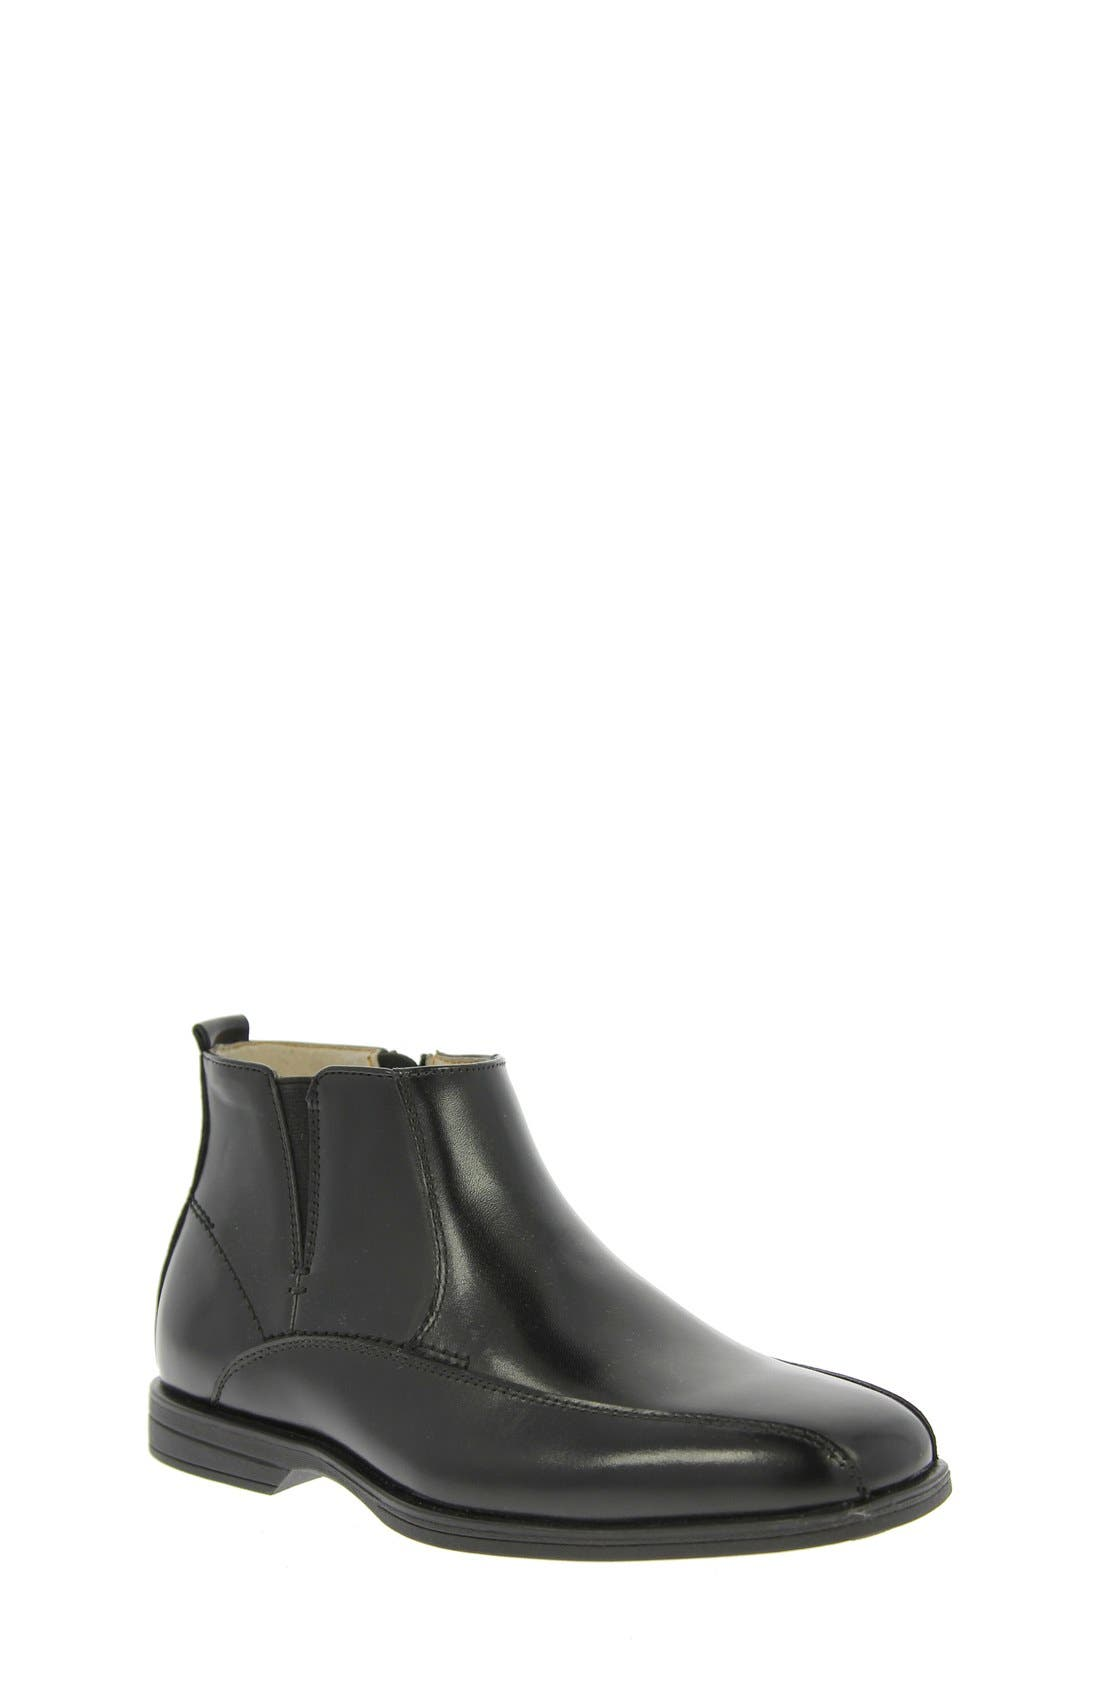 Reveal Chelsea Boot,                         Main,                         color, BLACK